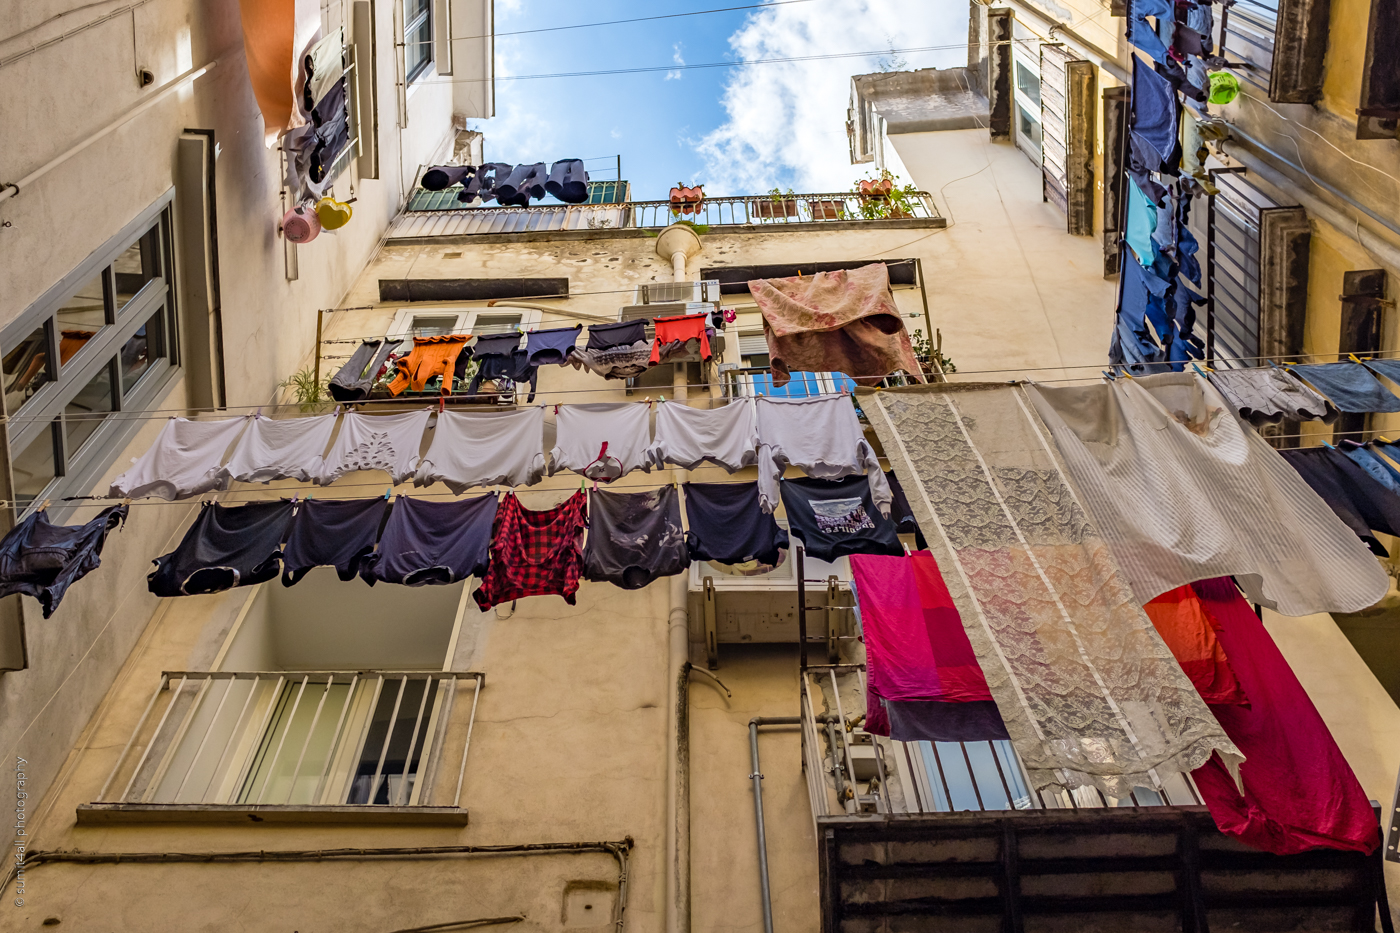 Clothes Hanging to Dry on a Street in Naples, Italy